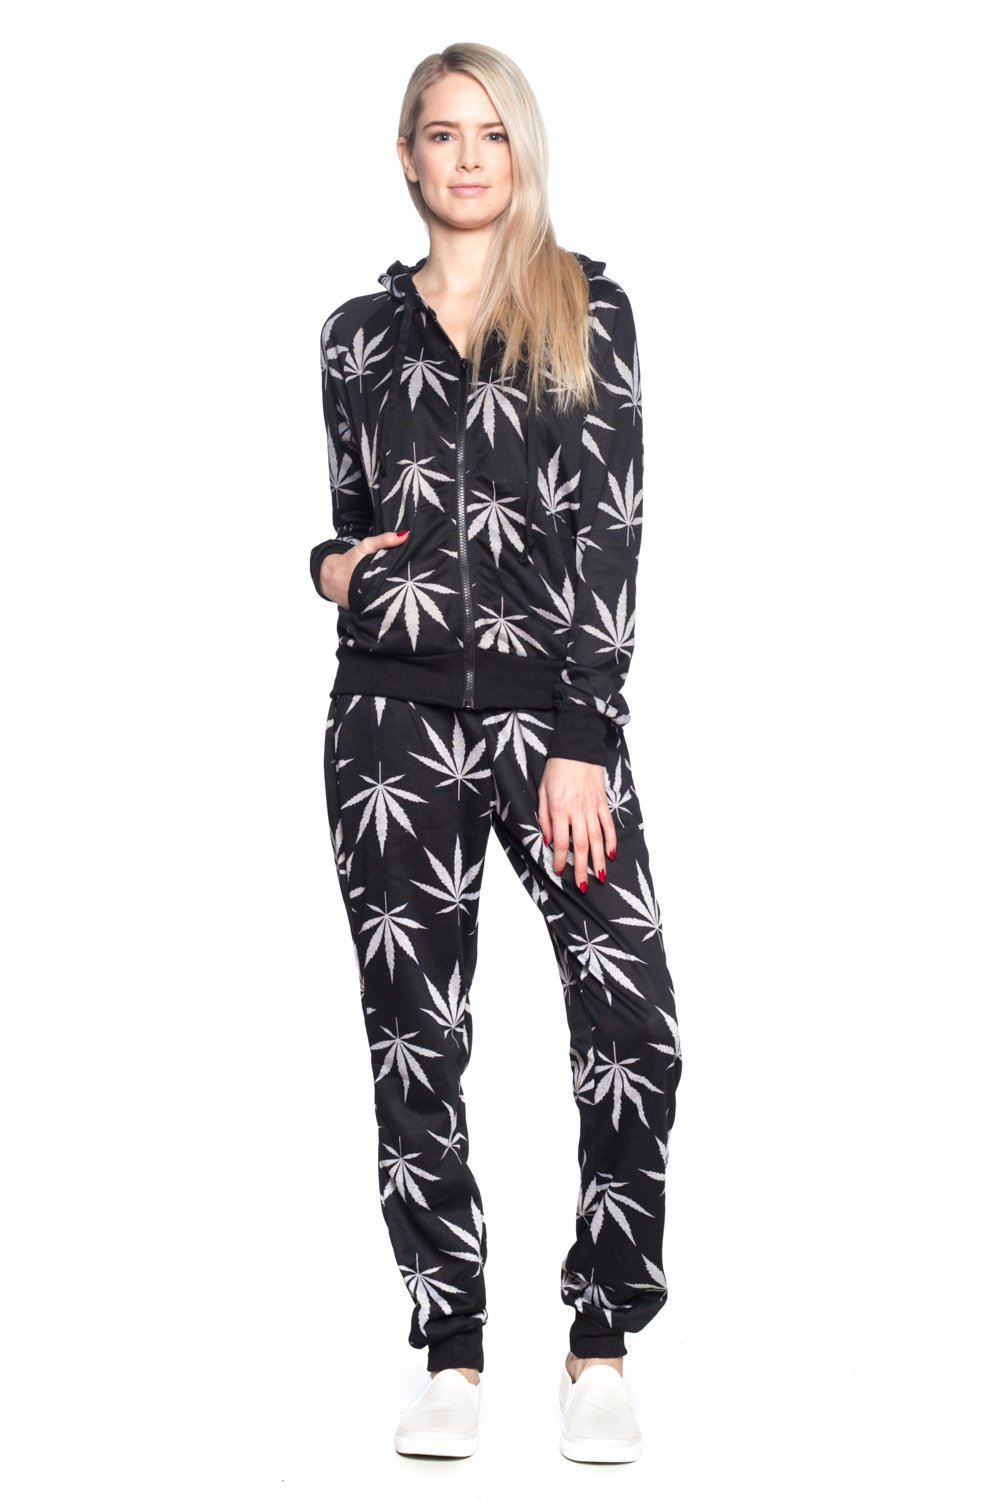 Calilogo Women's Weed Marijuana Pot Leaf Casual Jogging Pants Jacket Includes Free Gift (Small, Set Black) by Calilogo